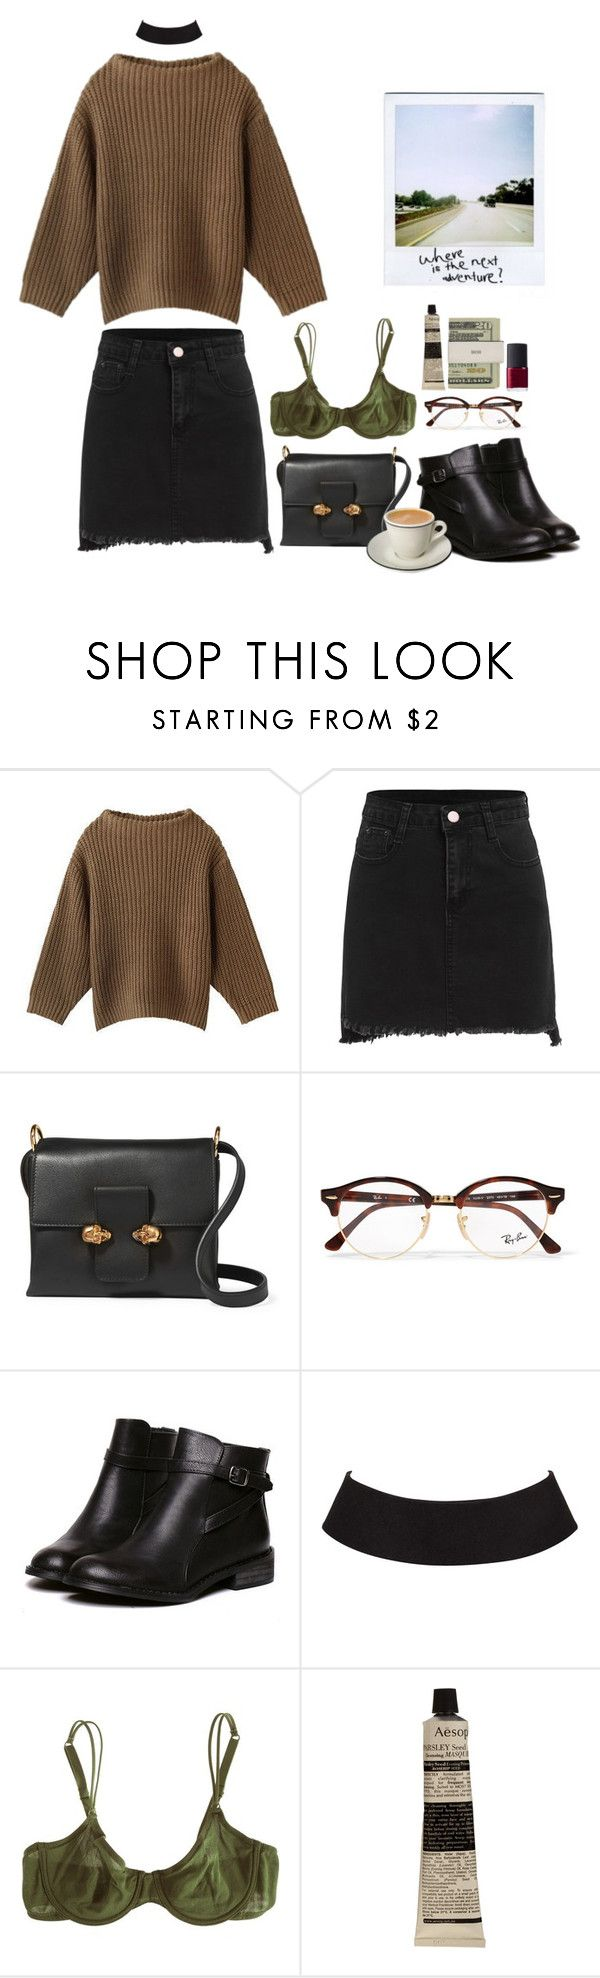 """the lumineers-sleep on the floor"" by paramorebianka ❤ liked on Polyvore featuring Alexander McQueen, Ray-Ban, Cosabella, Aesop, Jack Spade and NARS Cosmetics"